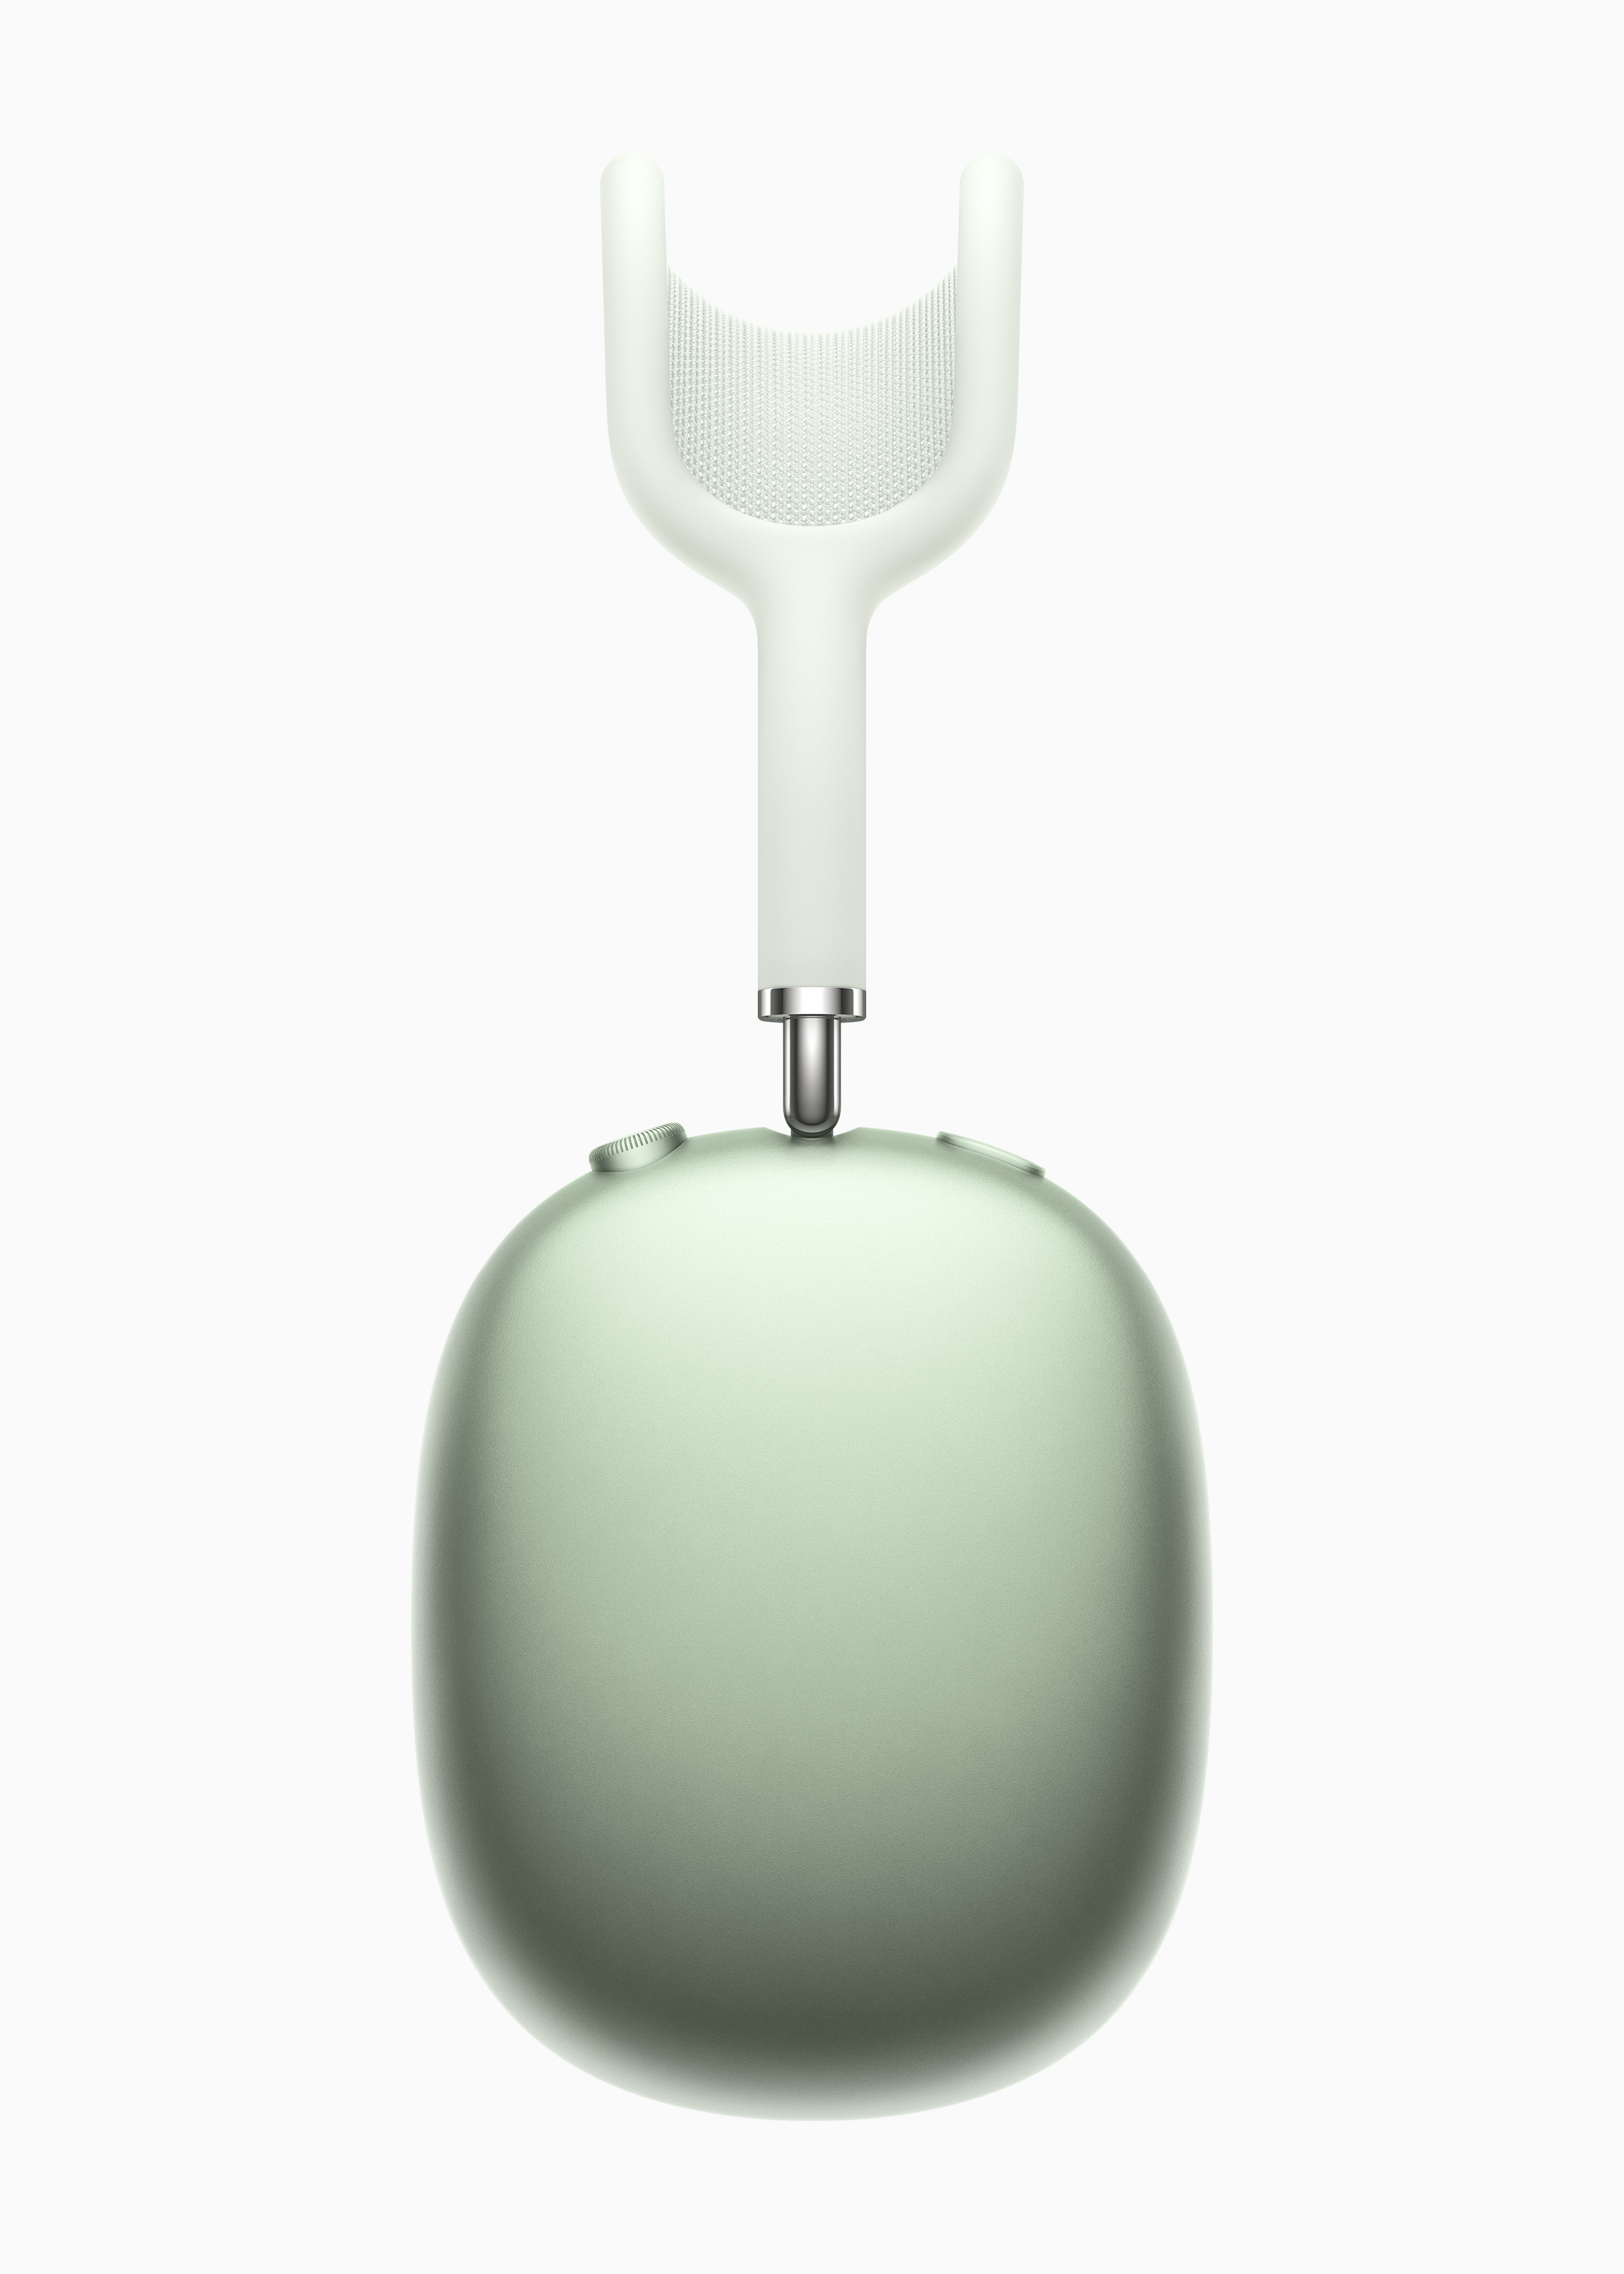 apple_airpods-max_color-green_12082020